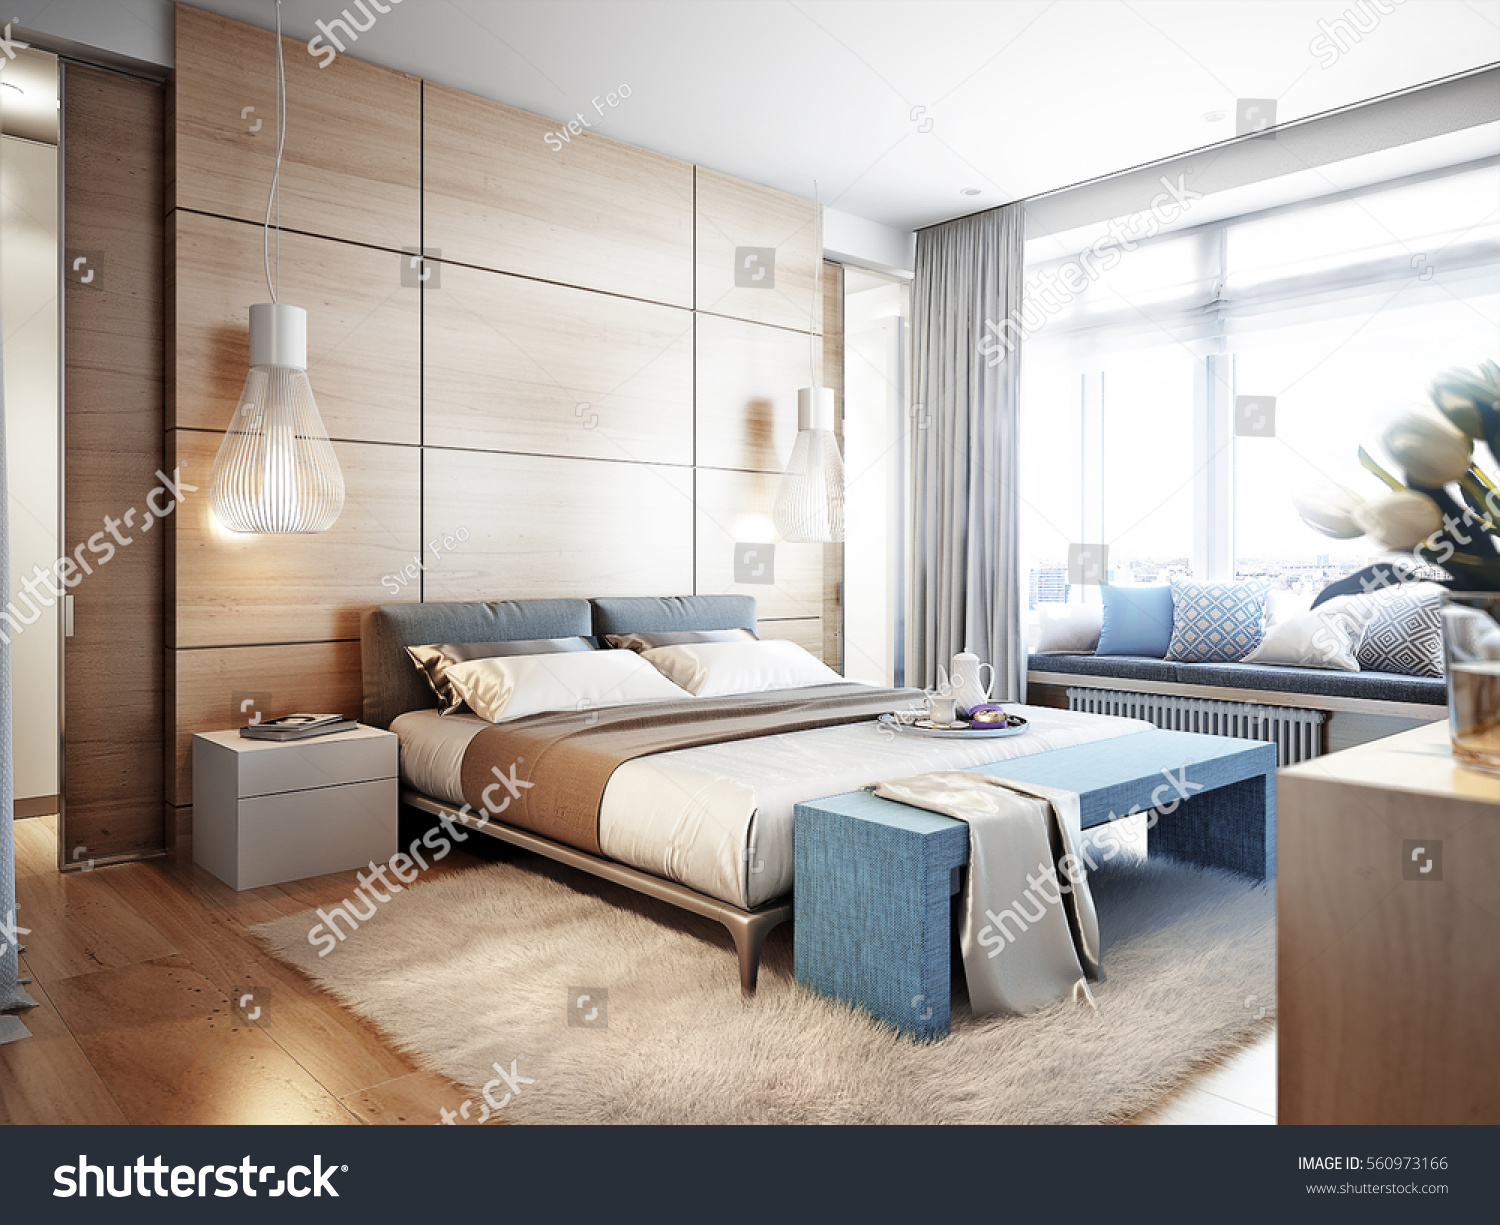 Modern window sill - Bright And Cozy Modern Bedroom With Dressing Room Large Window And Broad Window Sill For